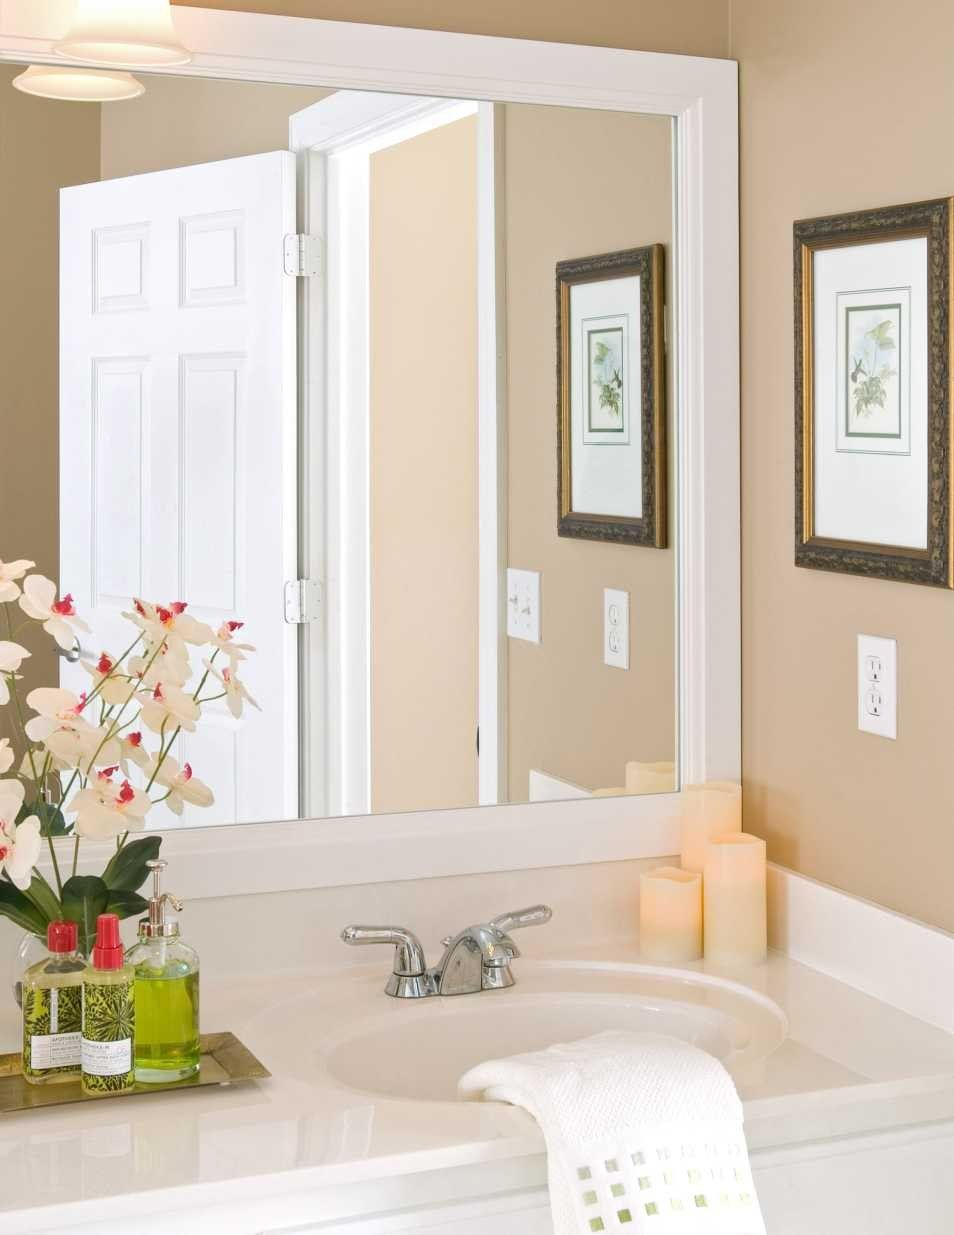 White Framed Bathroom Mirrors Bathroom Mirror Design Bathroom Mirror Frame Bathroom Mirror